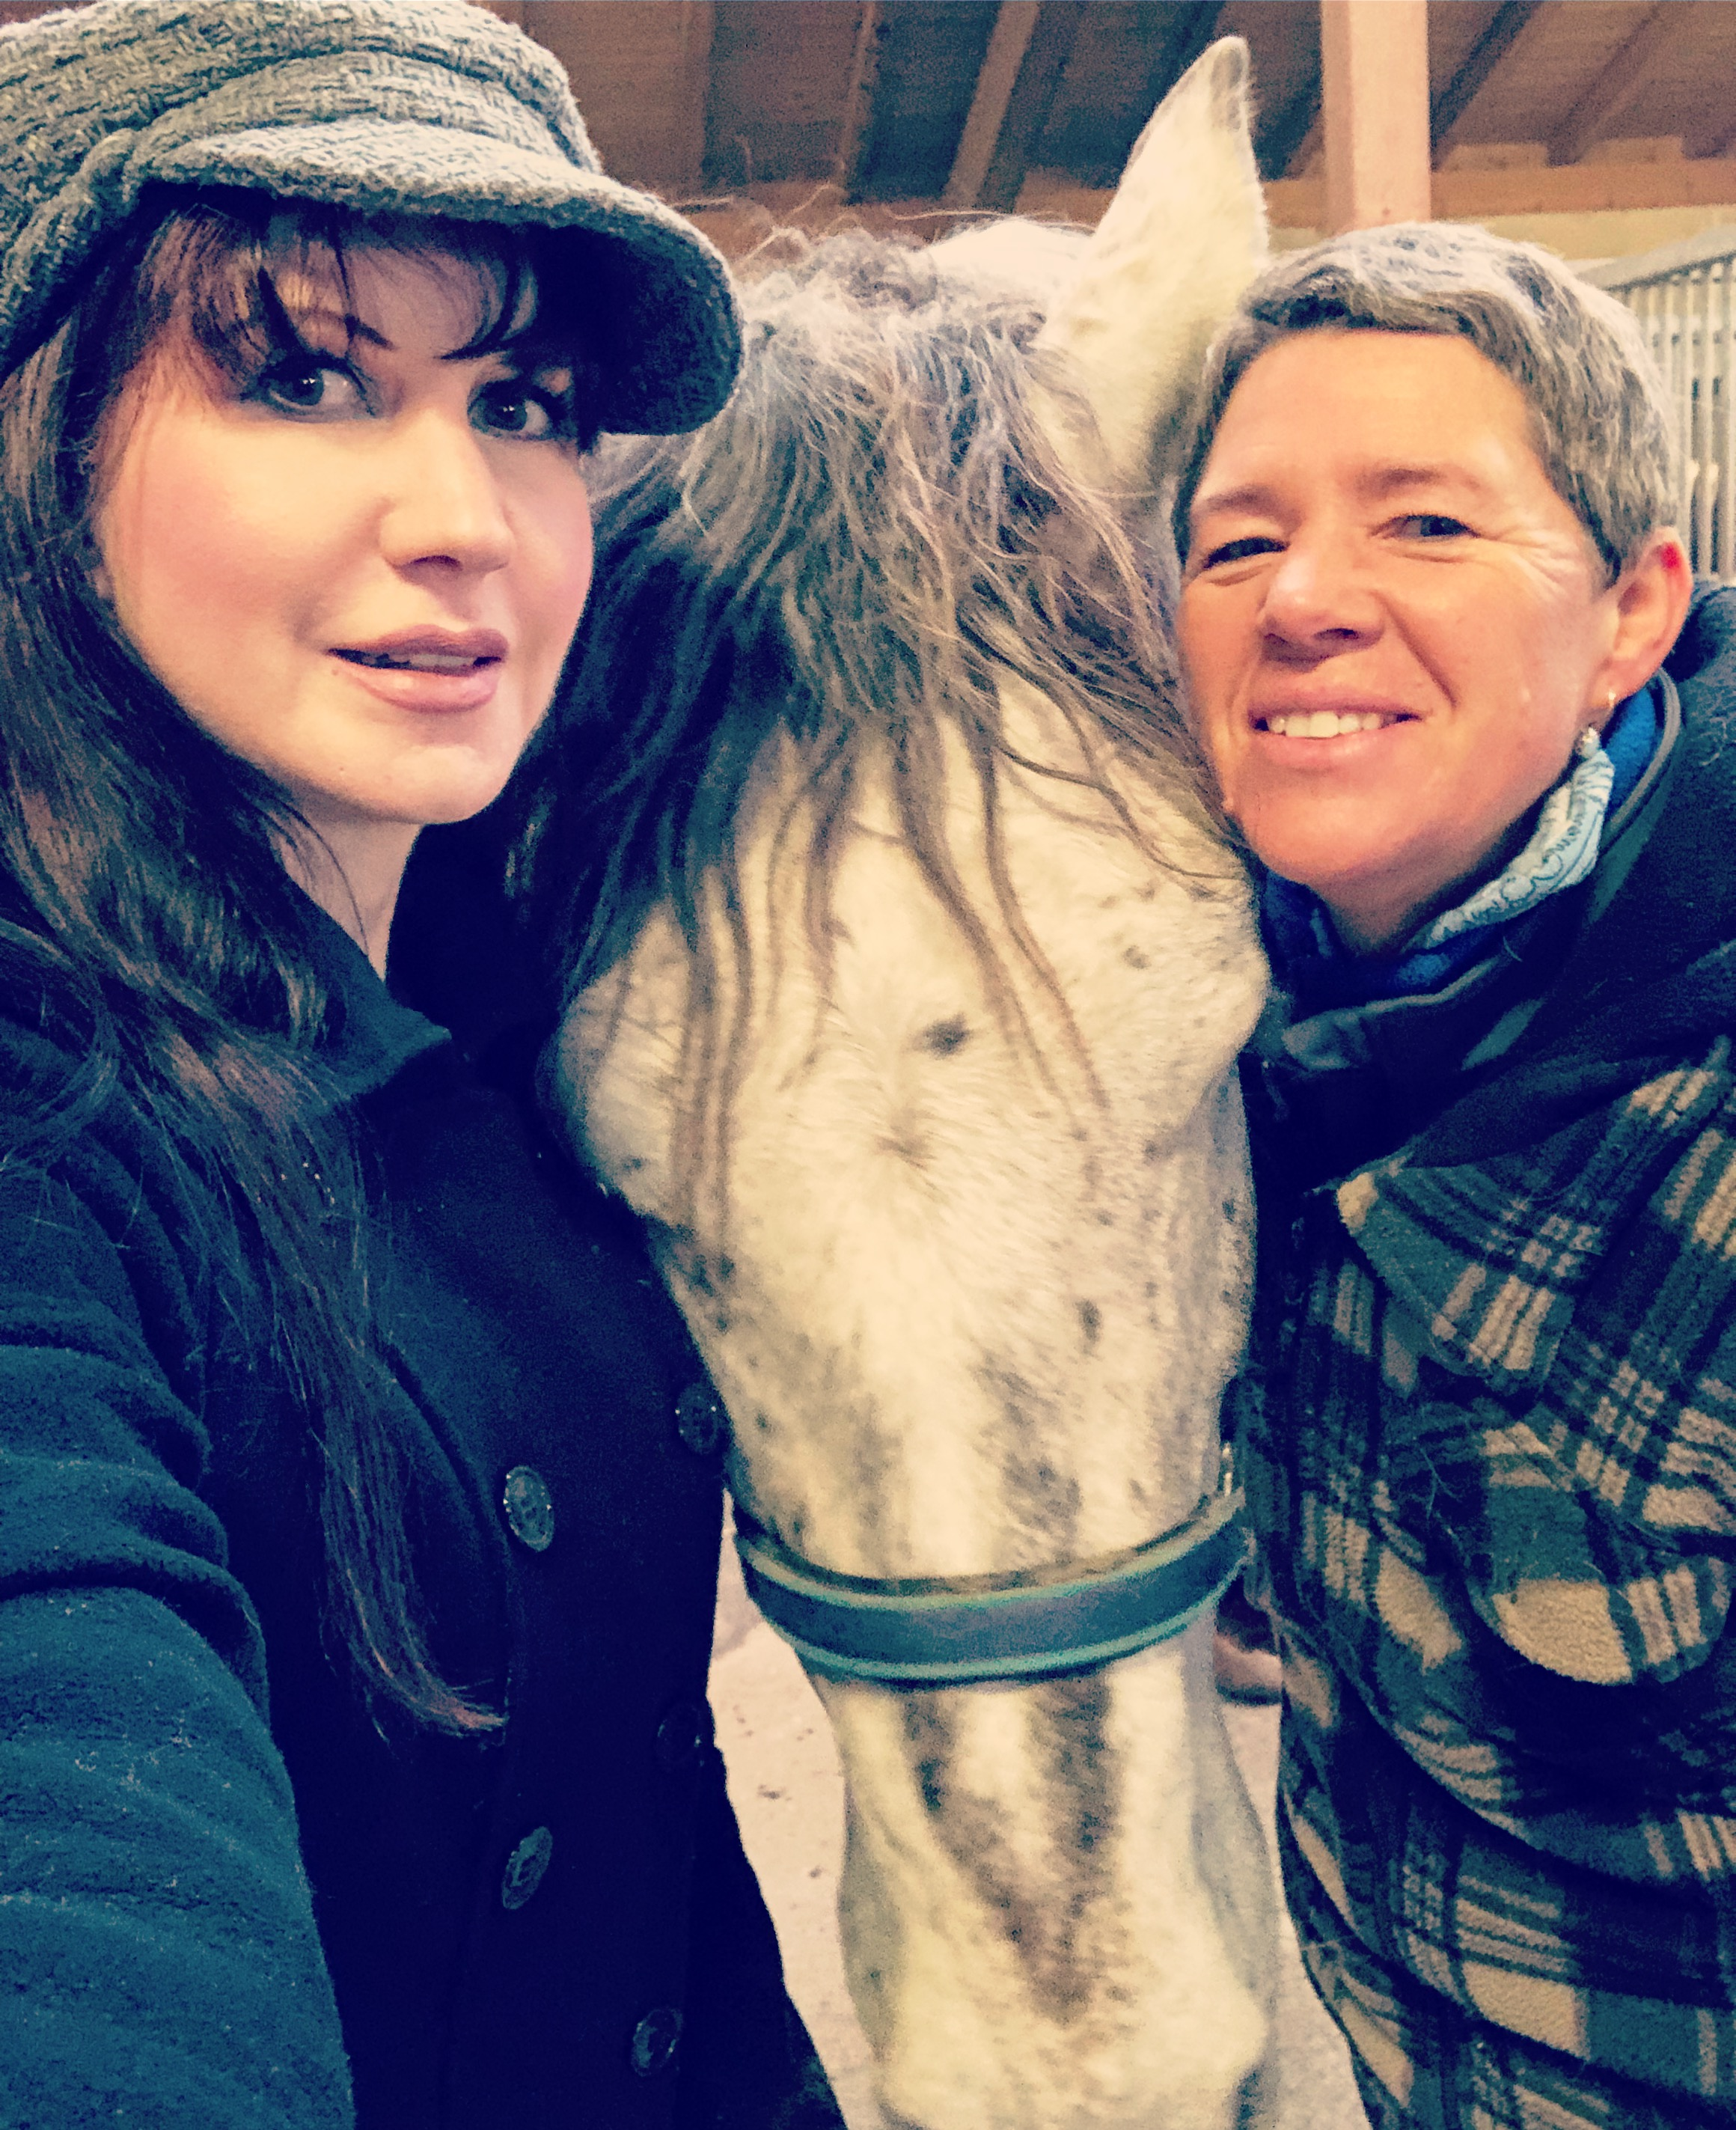 With my guide, Katia and her horse Tanya